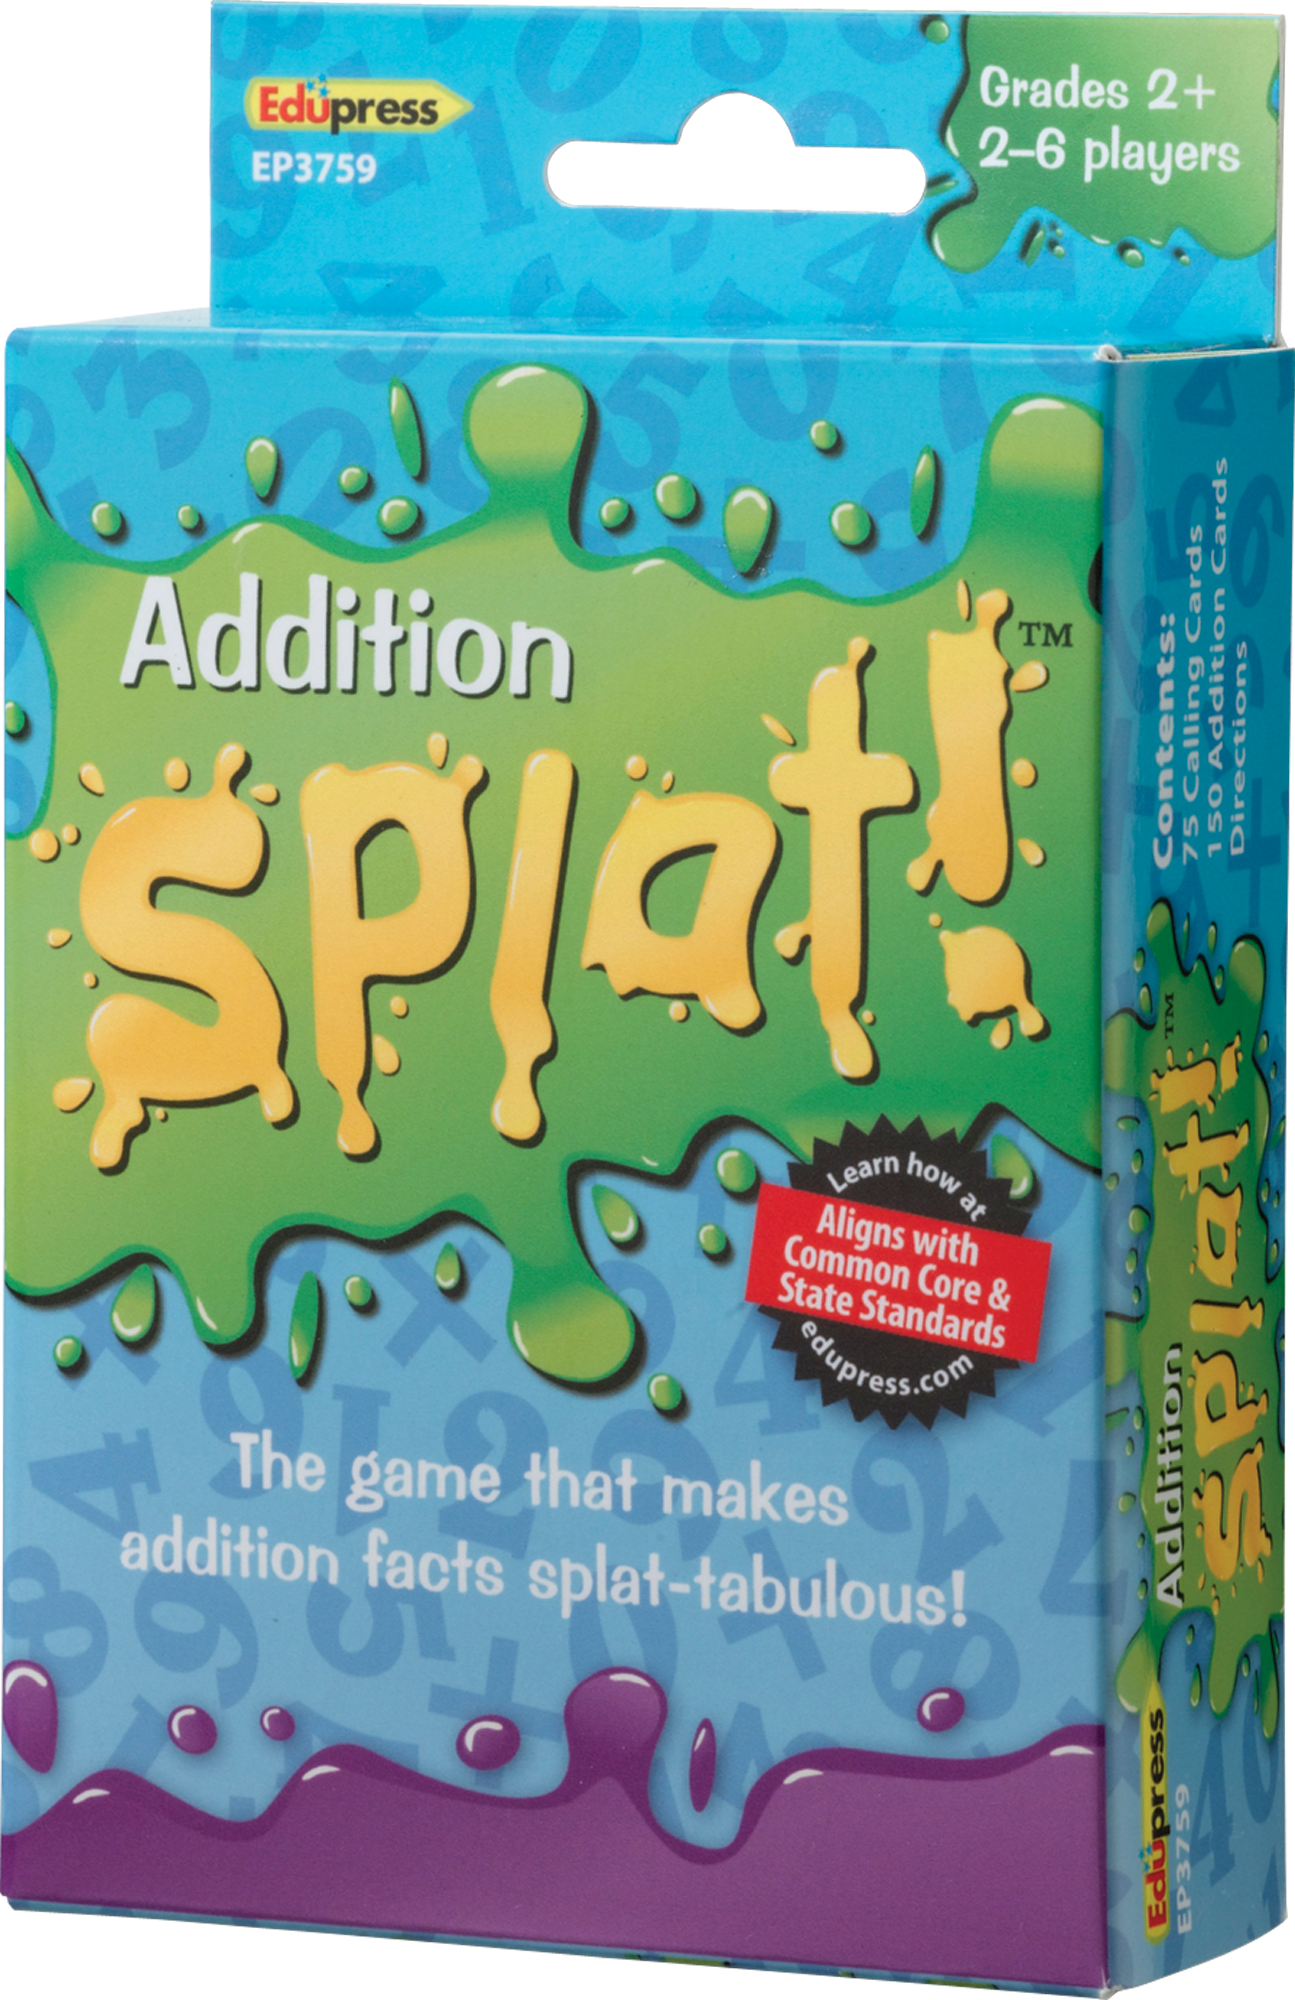 Splatª Game: Addition